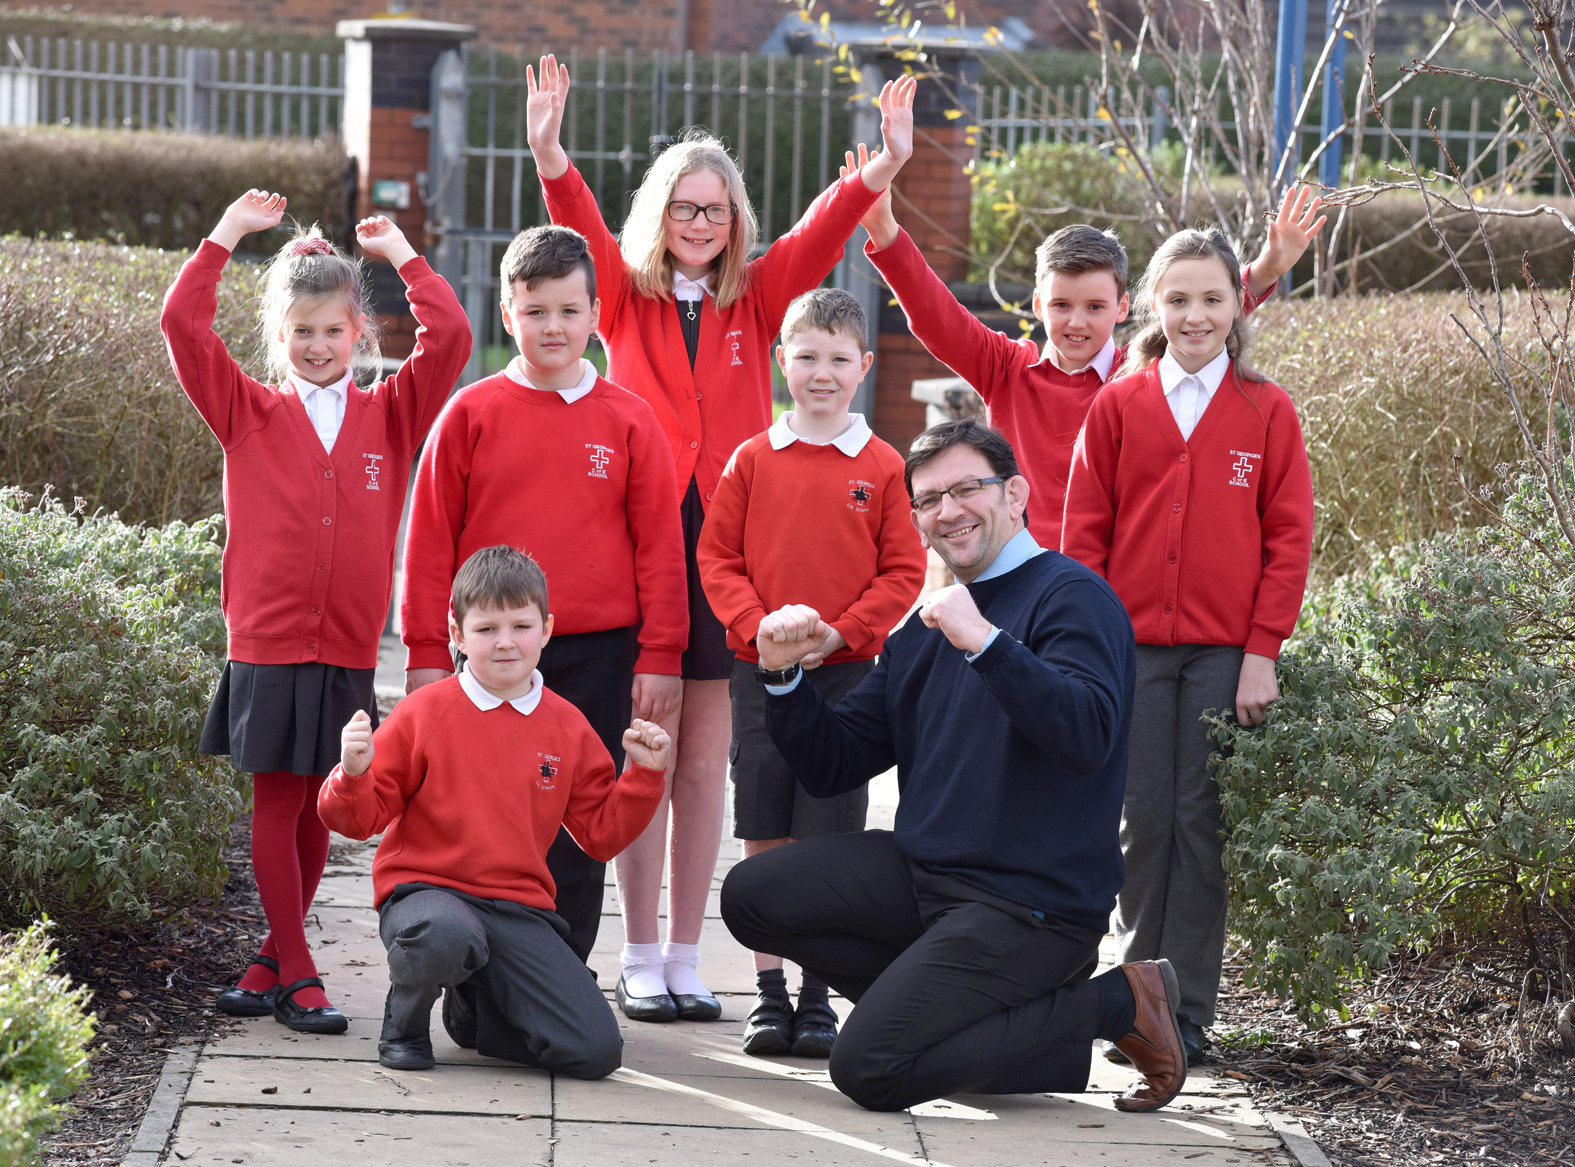 St georges westhoughton ofsted report